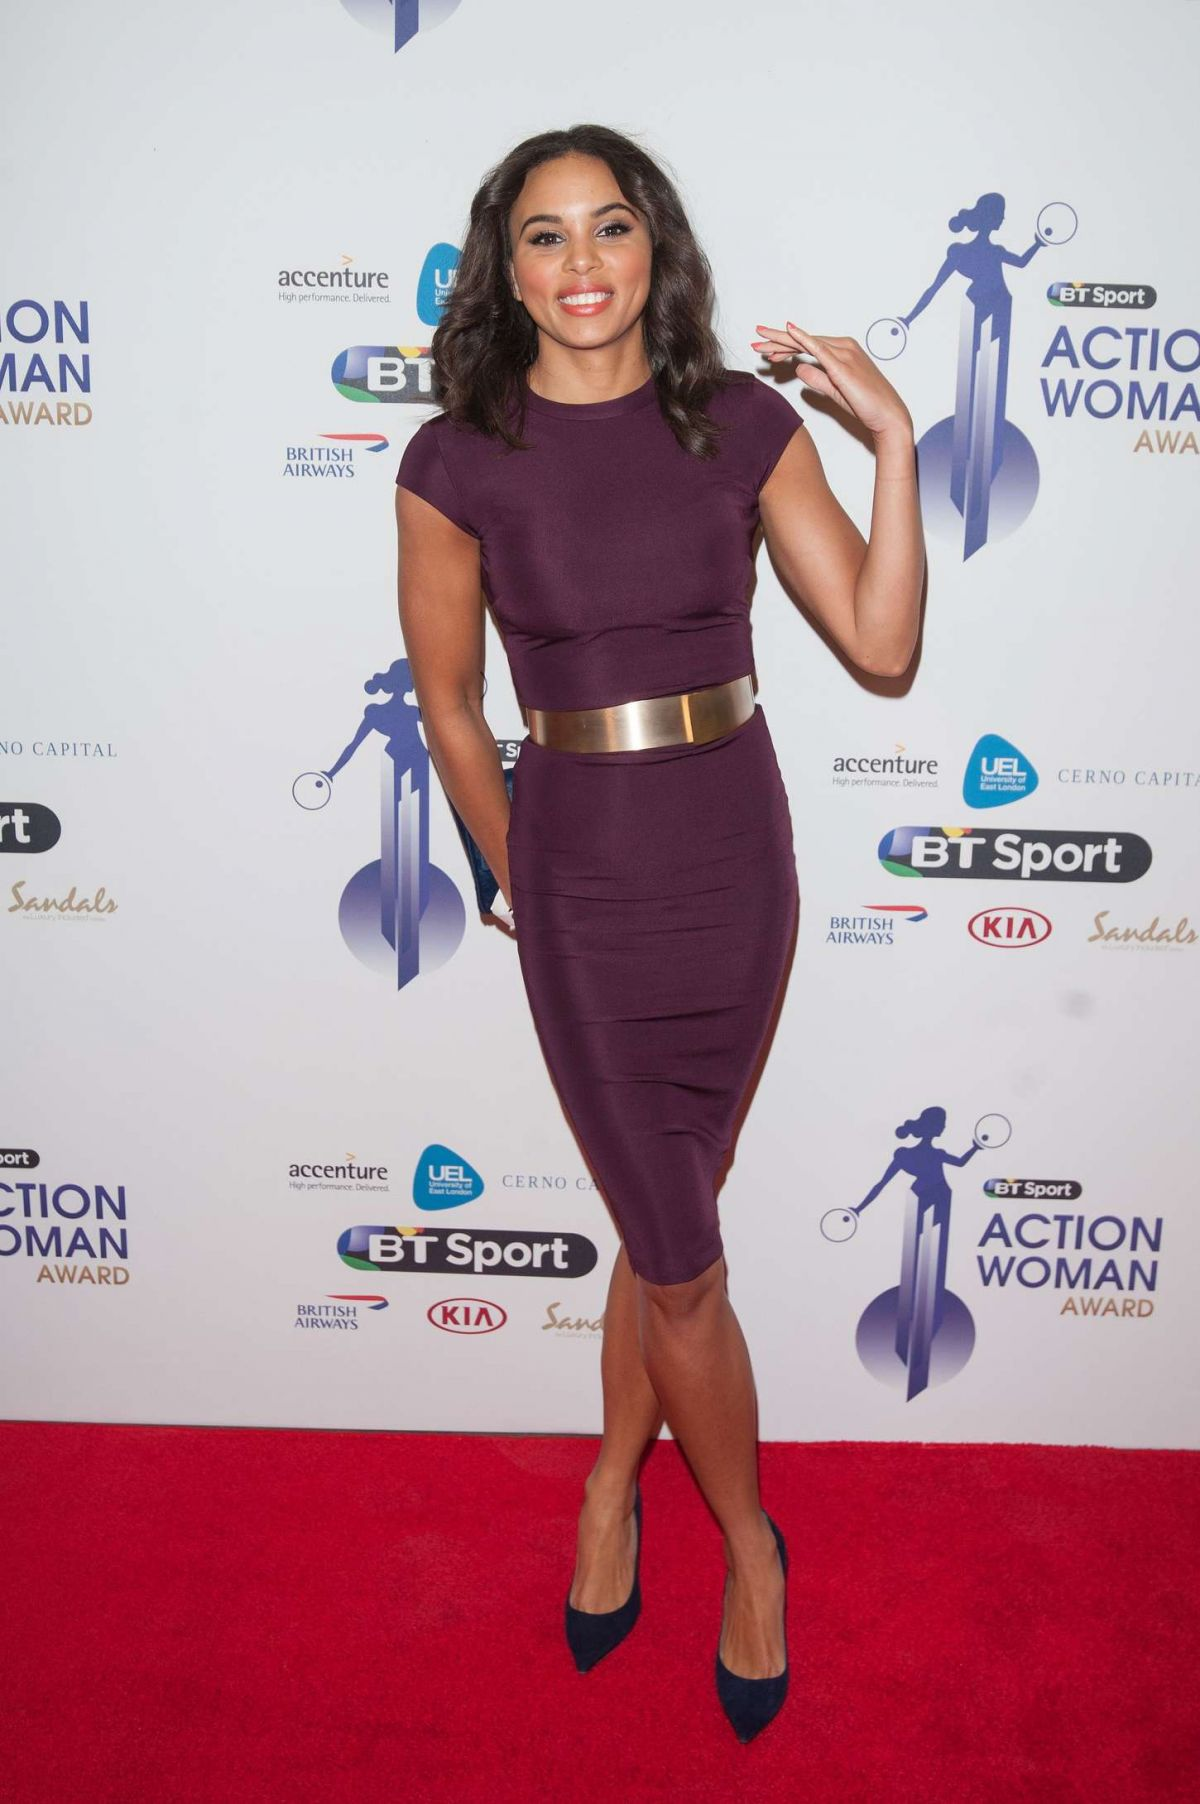 LOUISE HAZEL at BT Sport Action Woman Awards